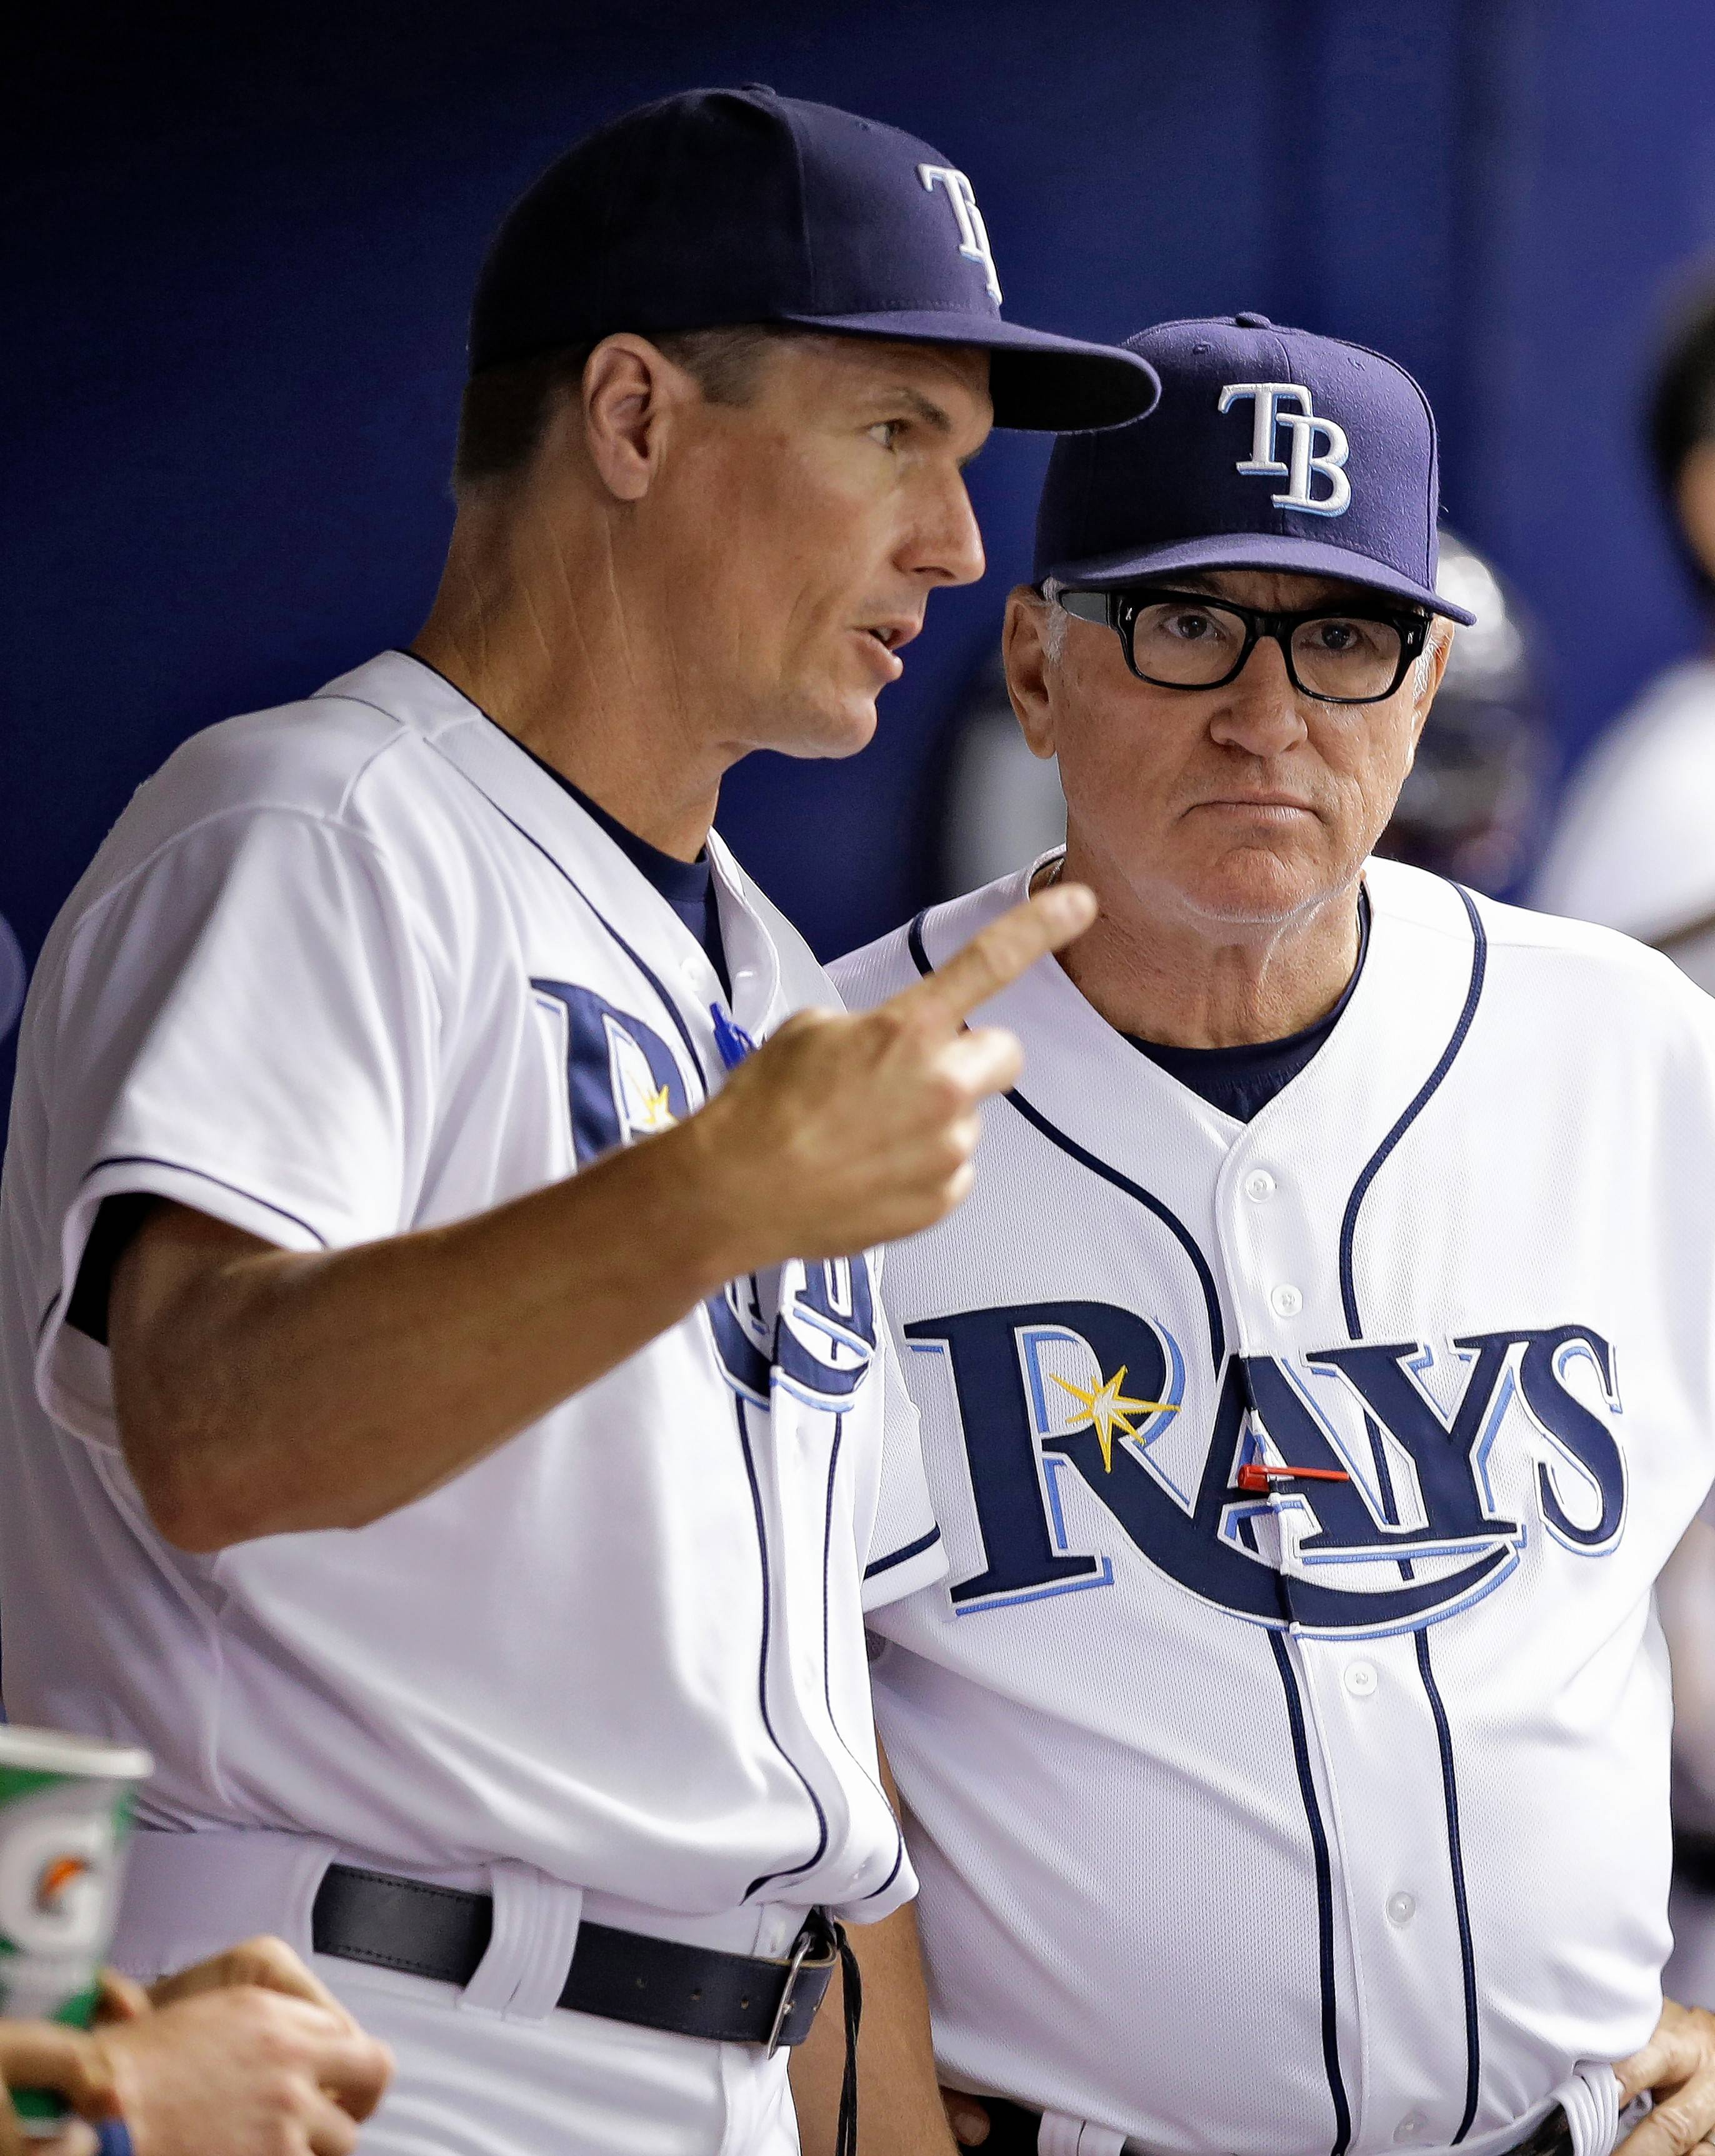 Tampa Bay Rays pitching coach Jim Hickey, left, and manager Joe Maddon talk in the dugout during the fifth inning of an interleague baseball game against the Miami Marlins Thursday, June 5, 2014, in St. Petersburg, Fla. (AP Photo/Chris O'Meara)